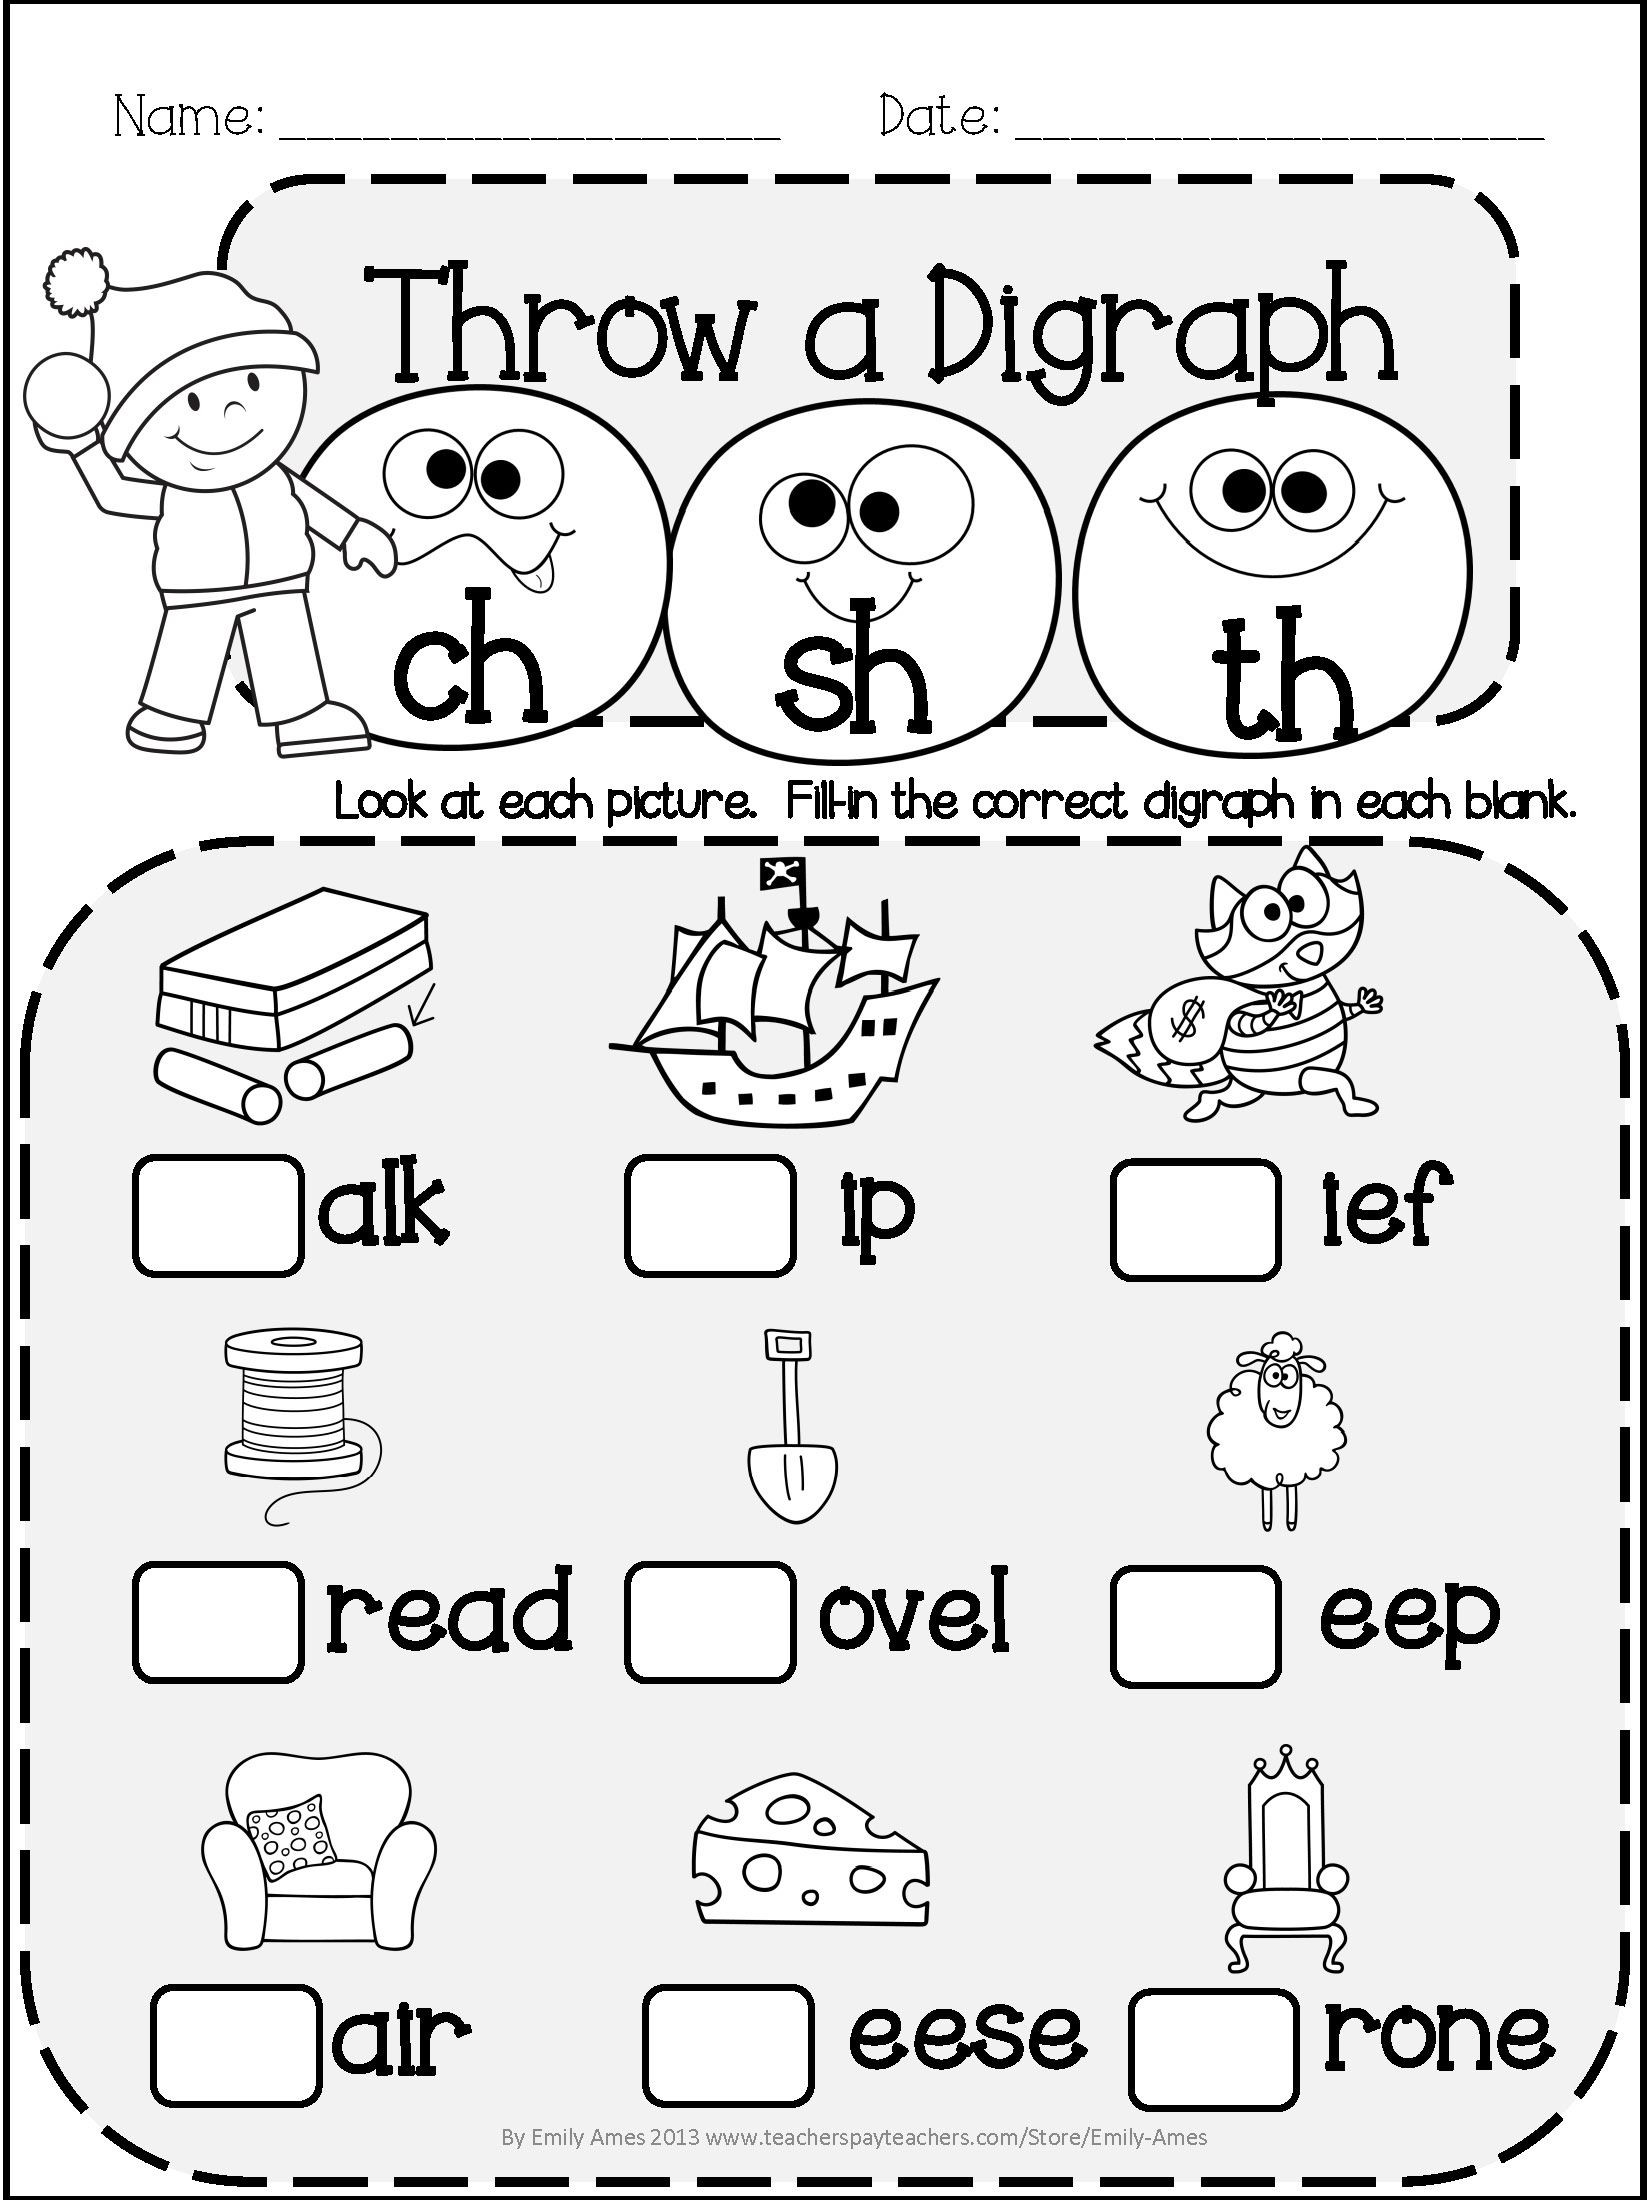 Silent E Worksheets Grade 2 Meet the Math Facts Copywriting Worksheets Phonics Silent E